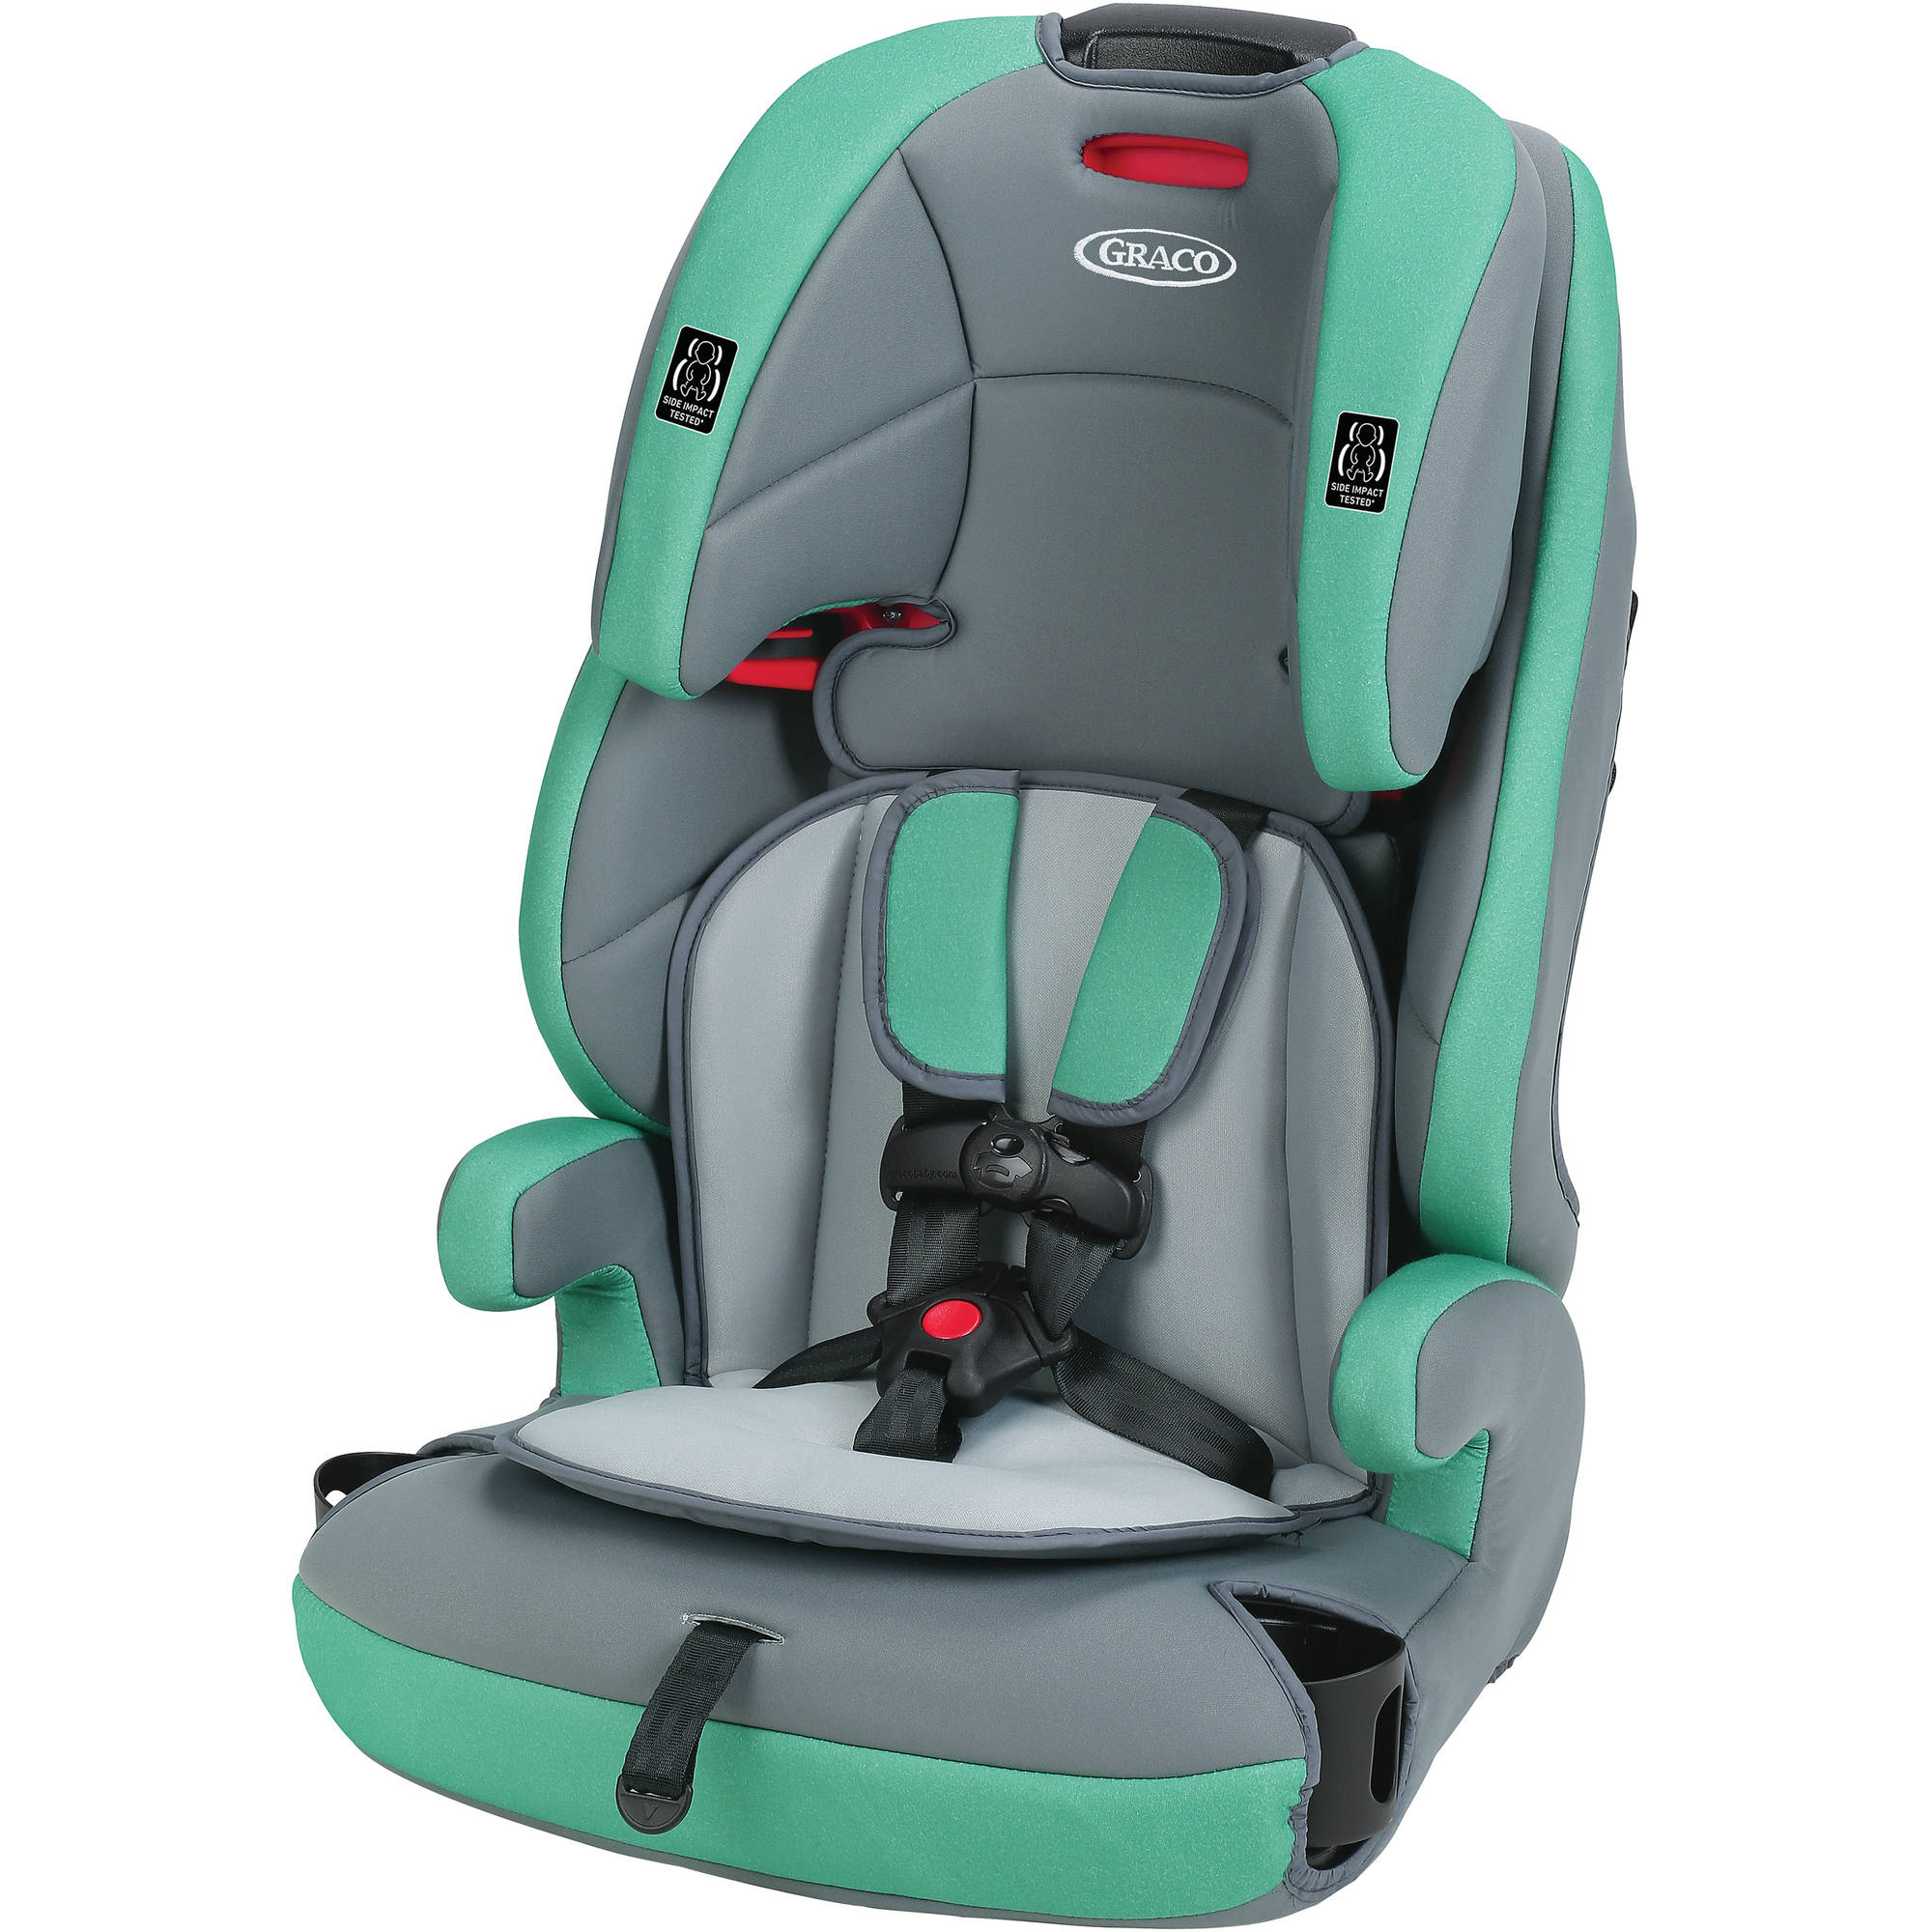 Graco Tranzitions 3-in-1 Harness Booster Car Seat, Basin